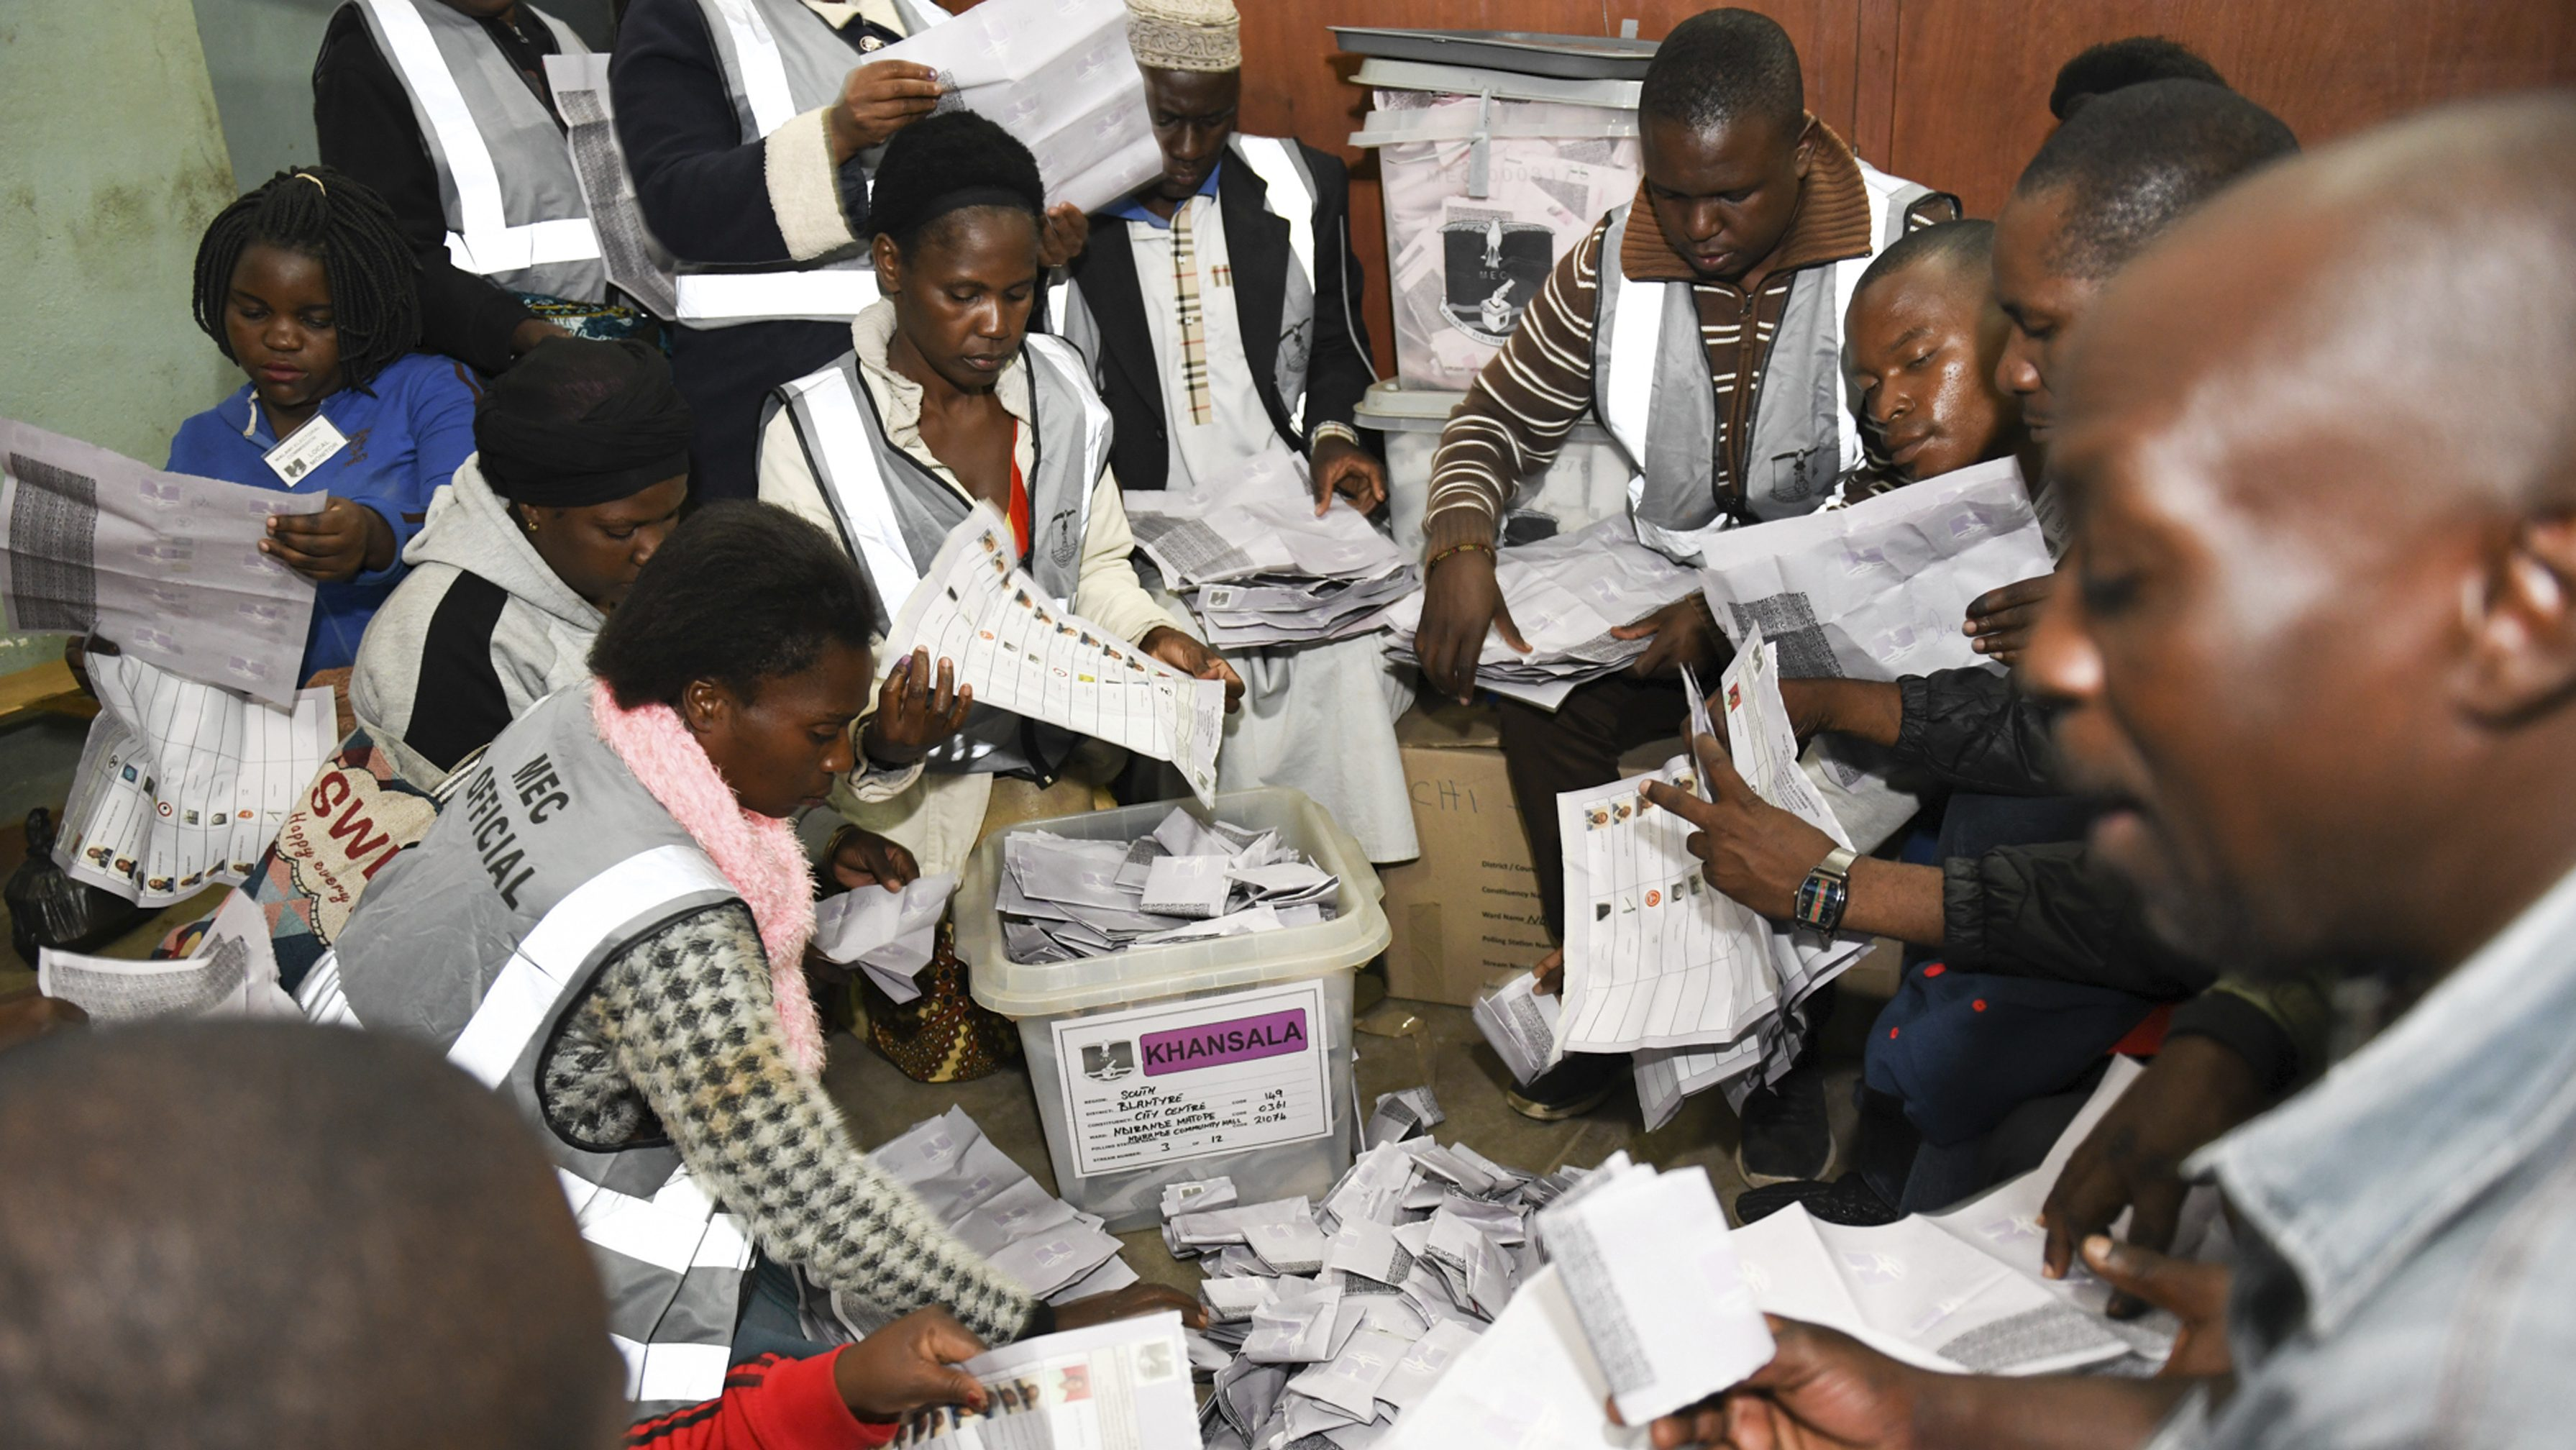 Malawi internet cut off after polls close on election day